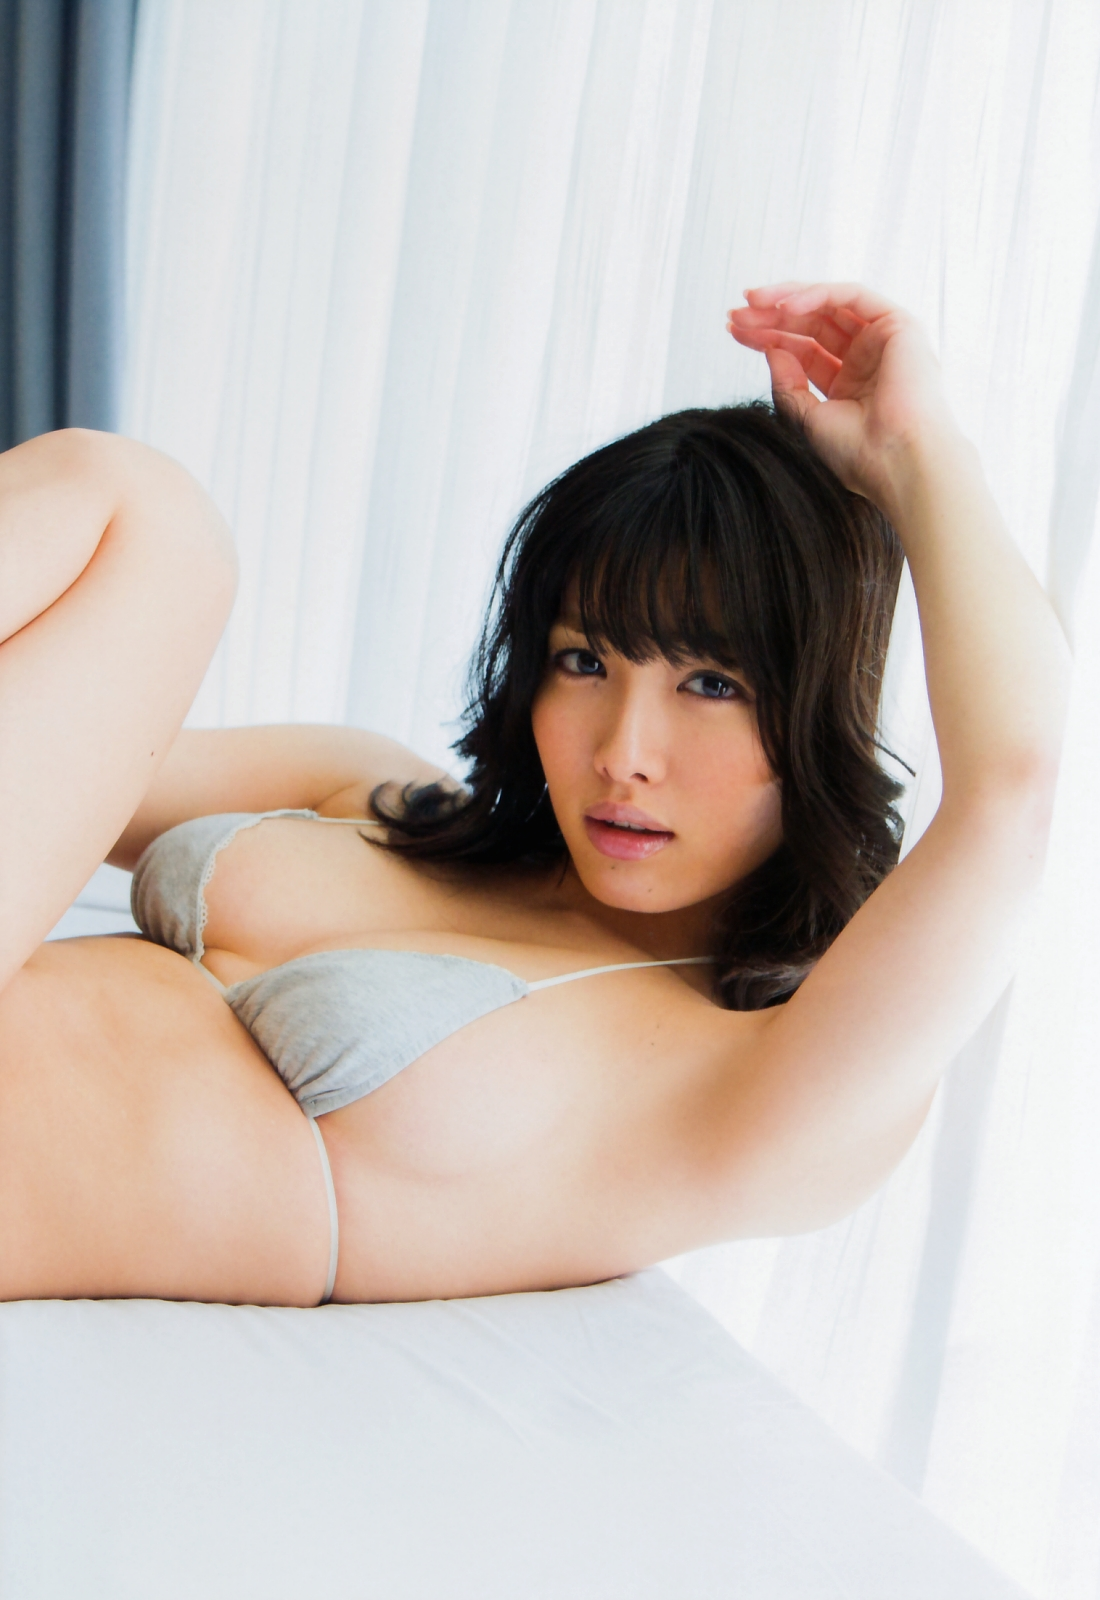 Its soft and makes you want to touch it Anna Konno 068